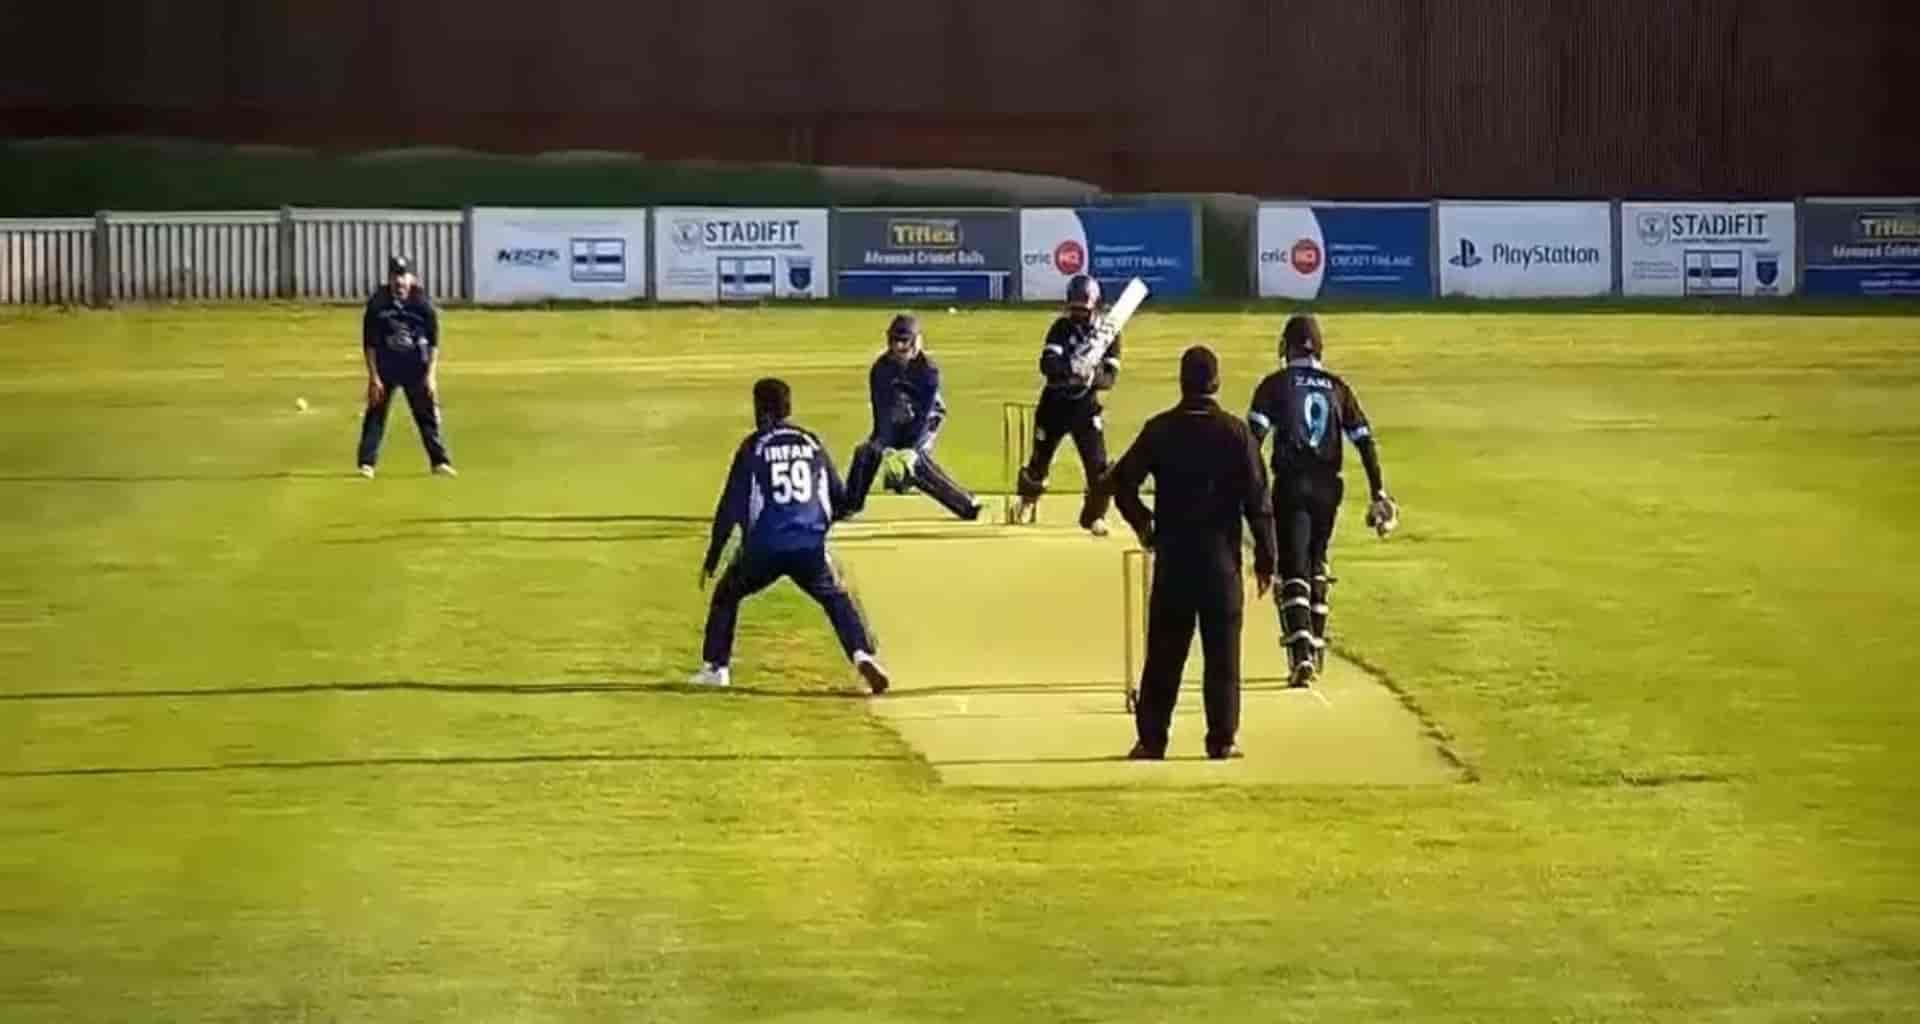 Finnish Premier League T20 2020: GYM Helsinki Gymkhana (GHG) vs FPC Finnish Pakistani CC Live Streaming, squads, Dream11 prediction and Timing